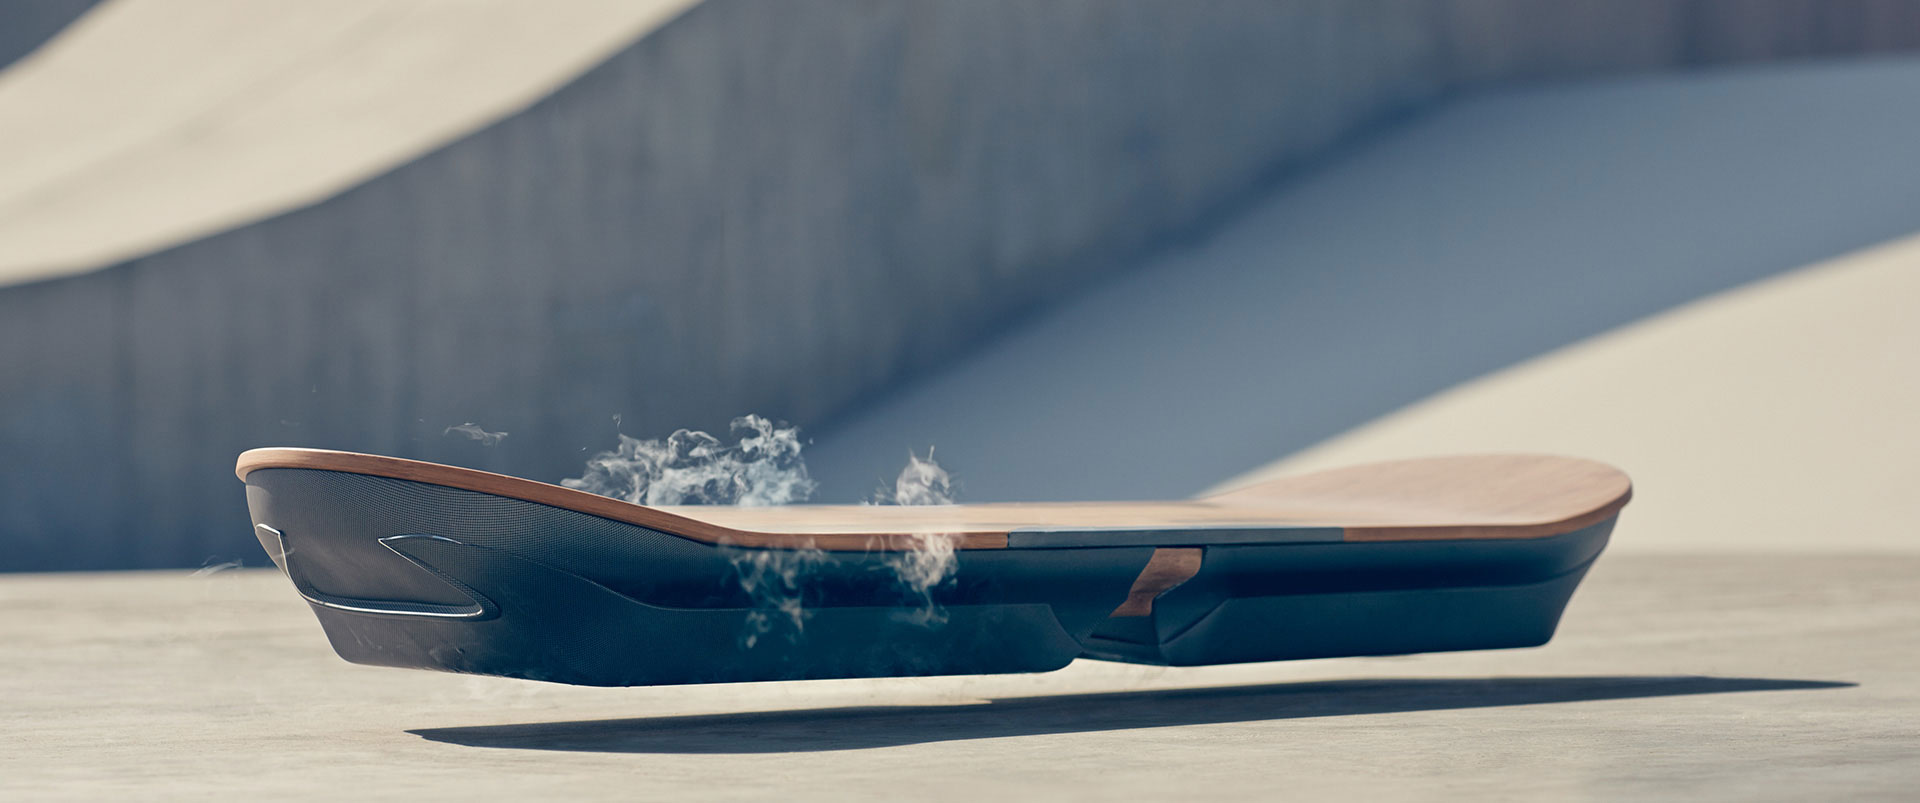 lexus hoverboard viral marketing header